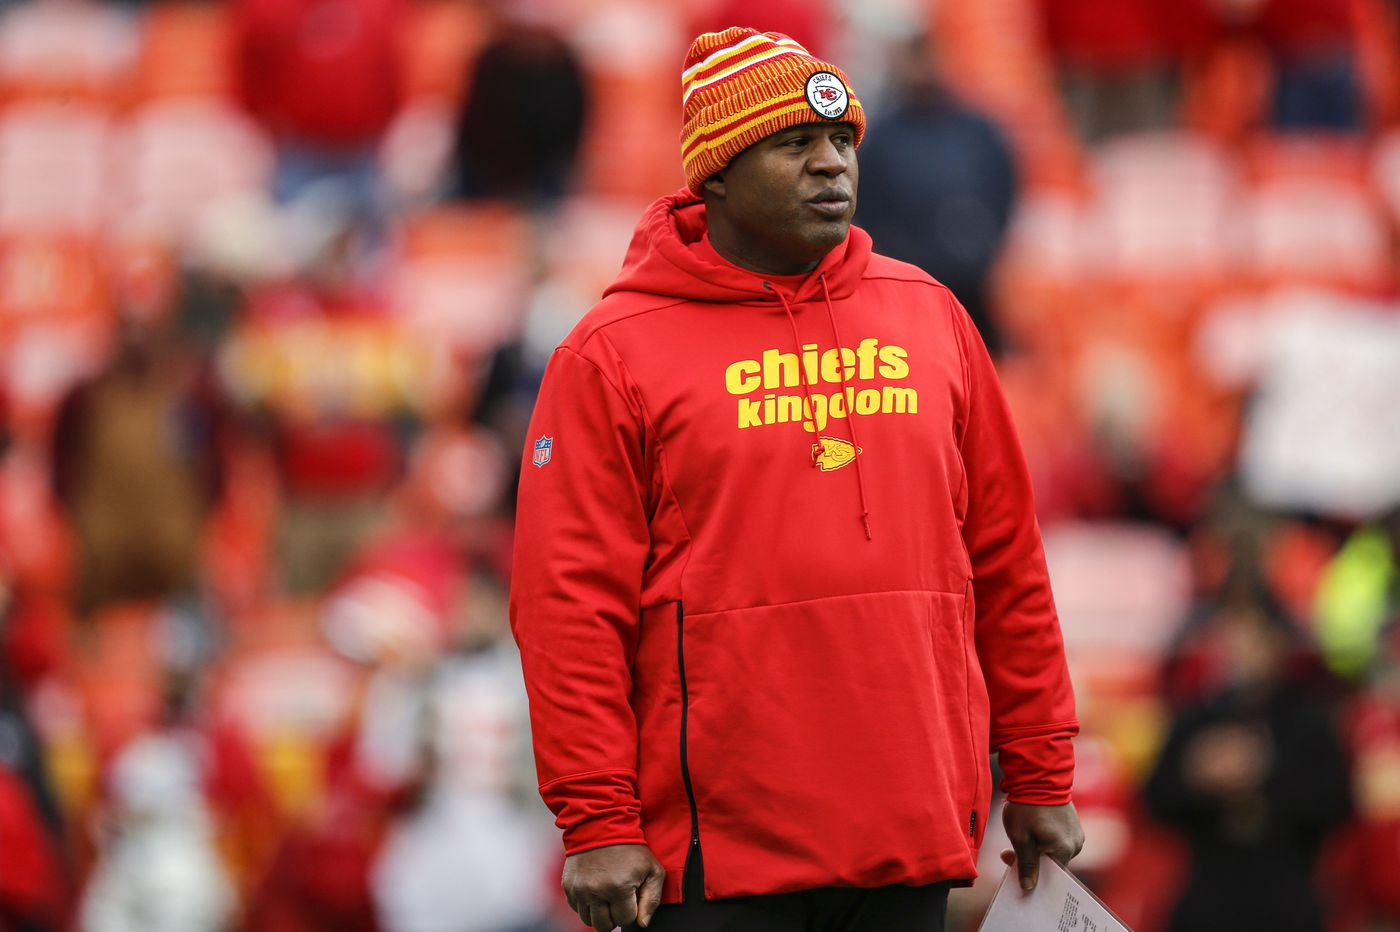 Eagles head coaching candidates: Nine names to remember for Doug Pederson's possible replacement